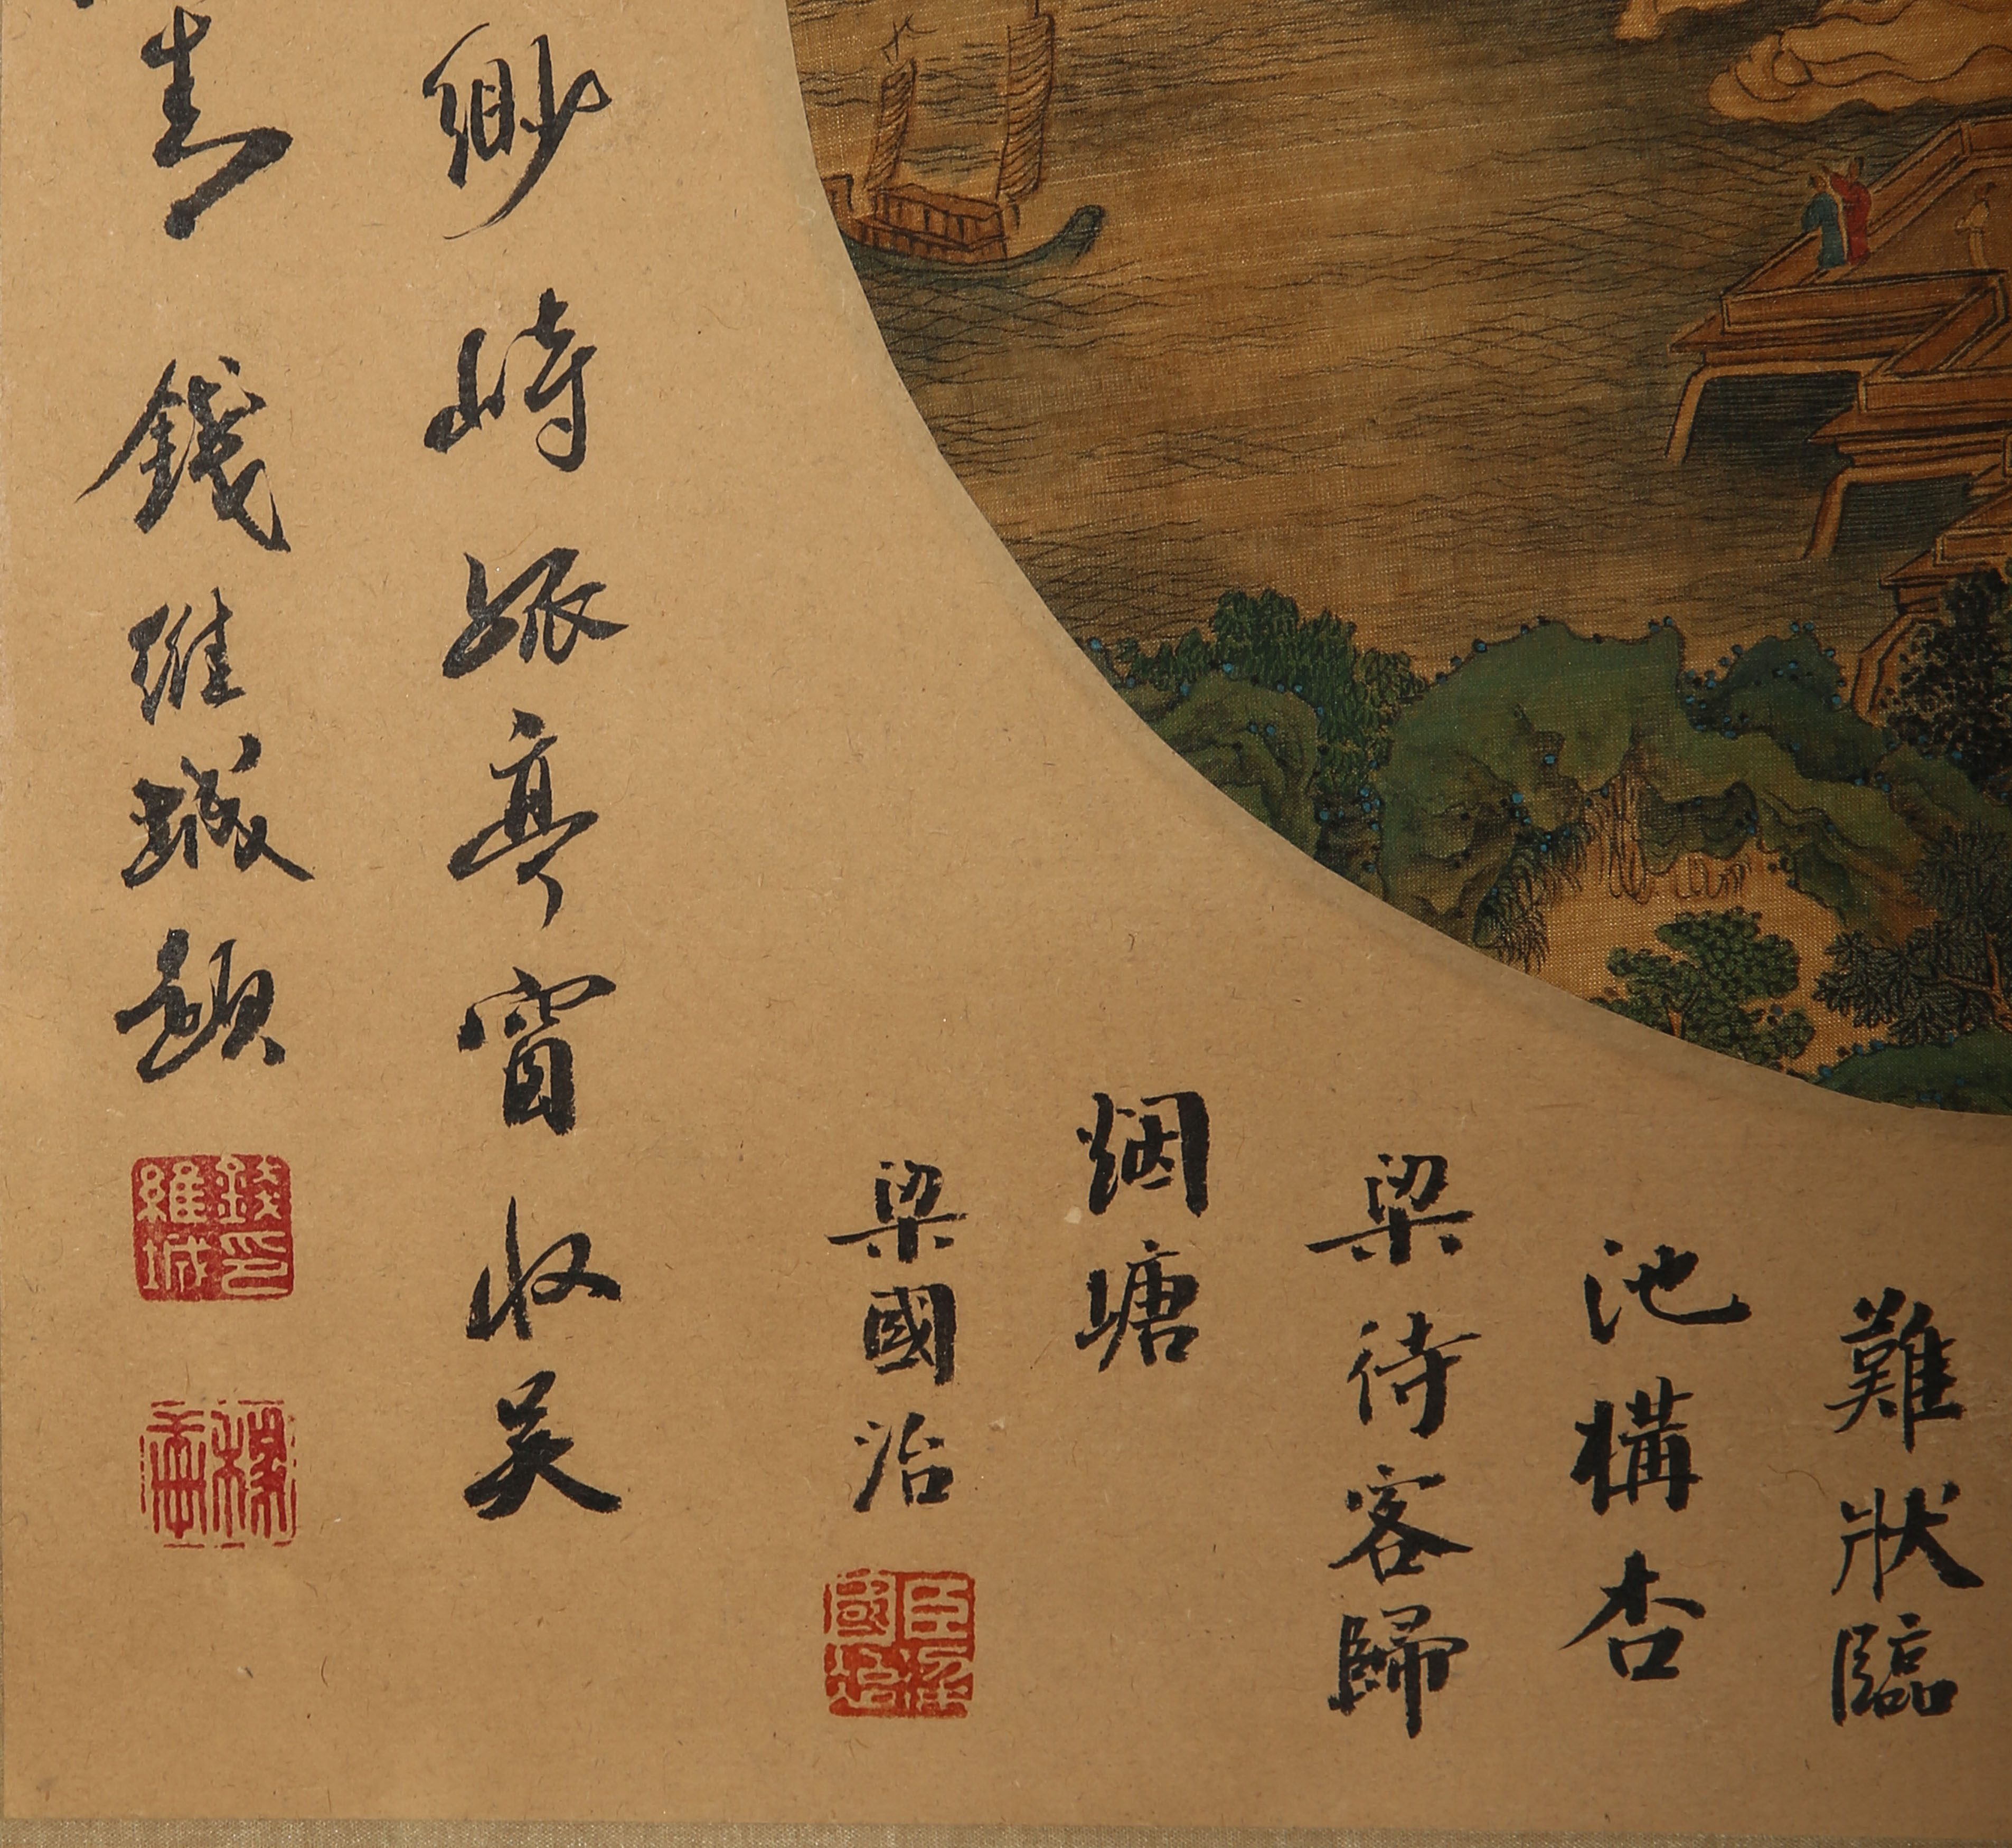 PAINTING AND CALLIGRAPHY 'CITYSCAPE', CHINA - Image 9 of 9